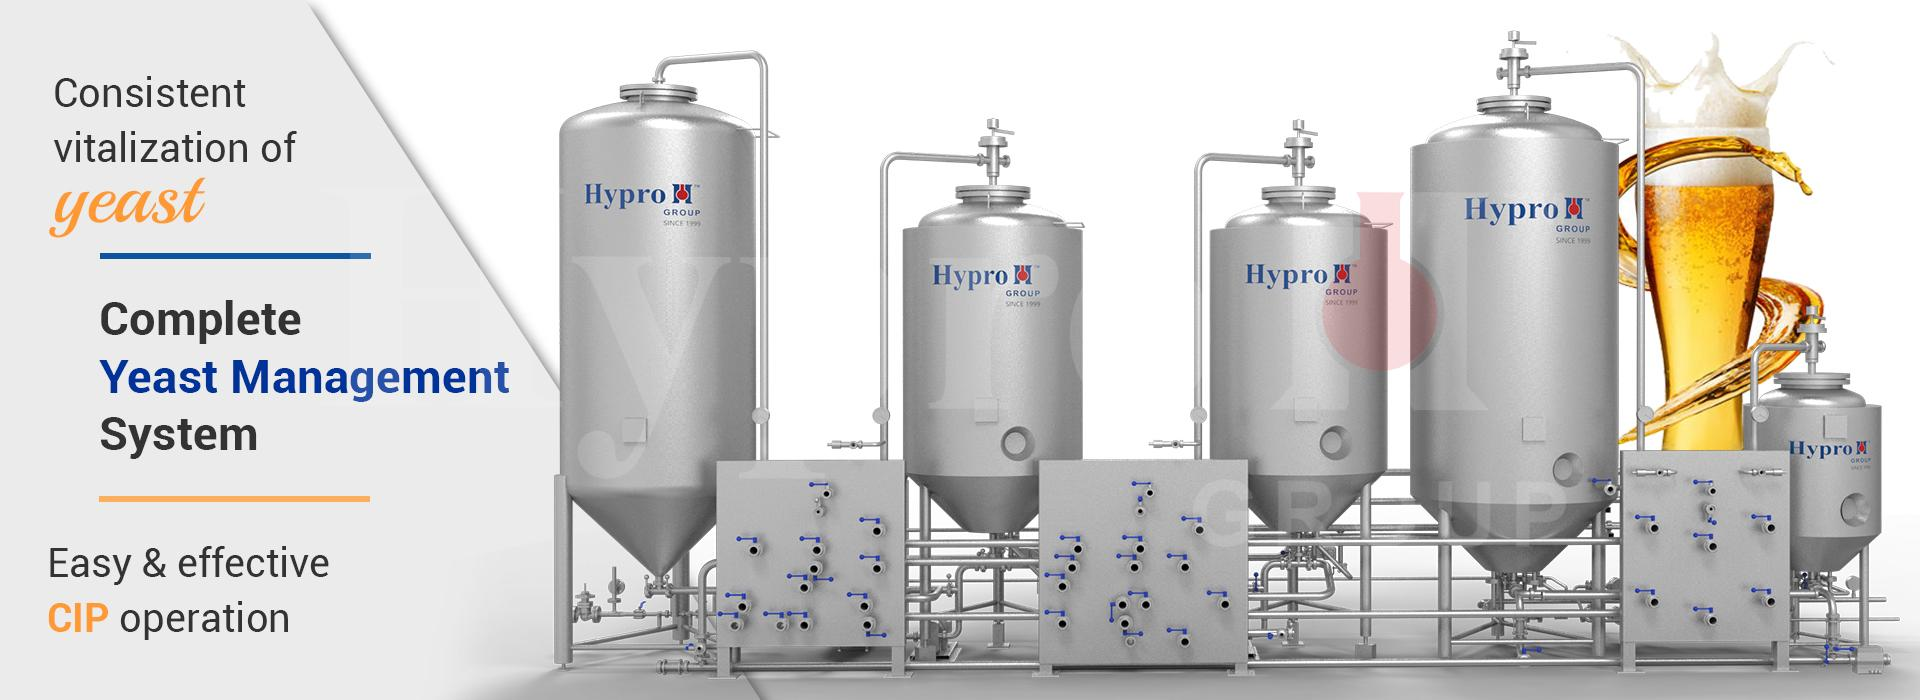 Yeast Section Hypro